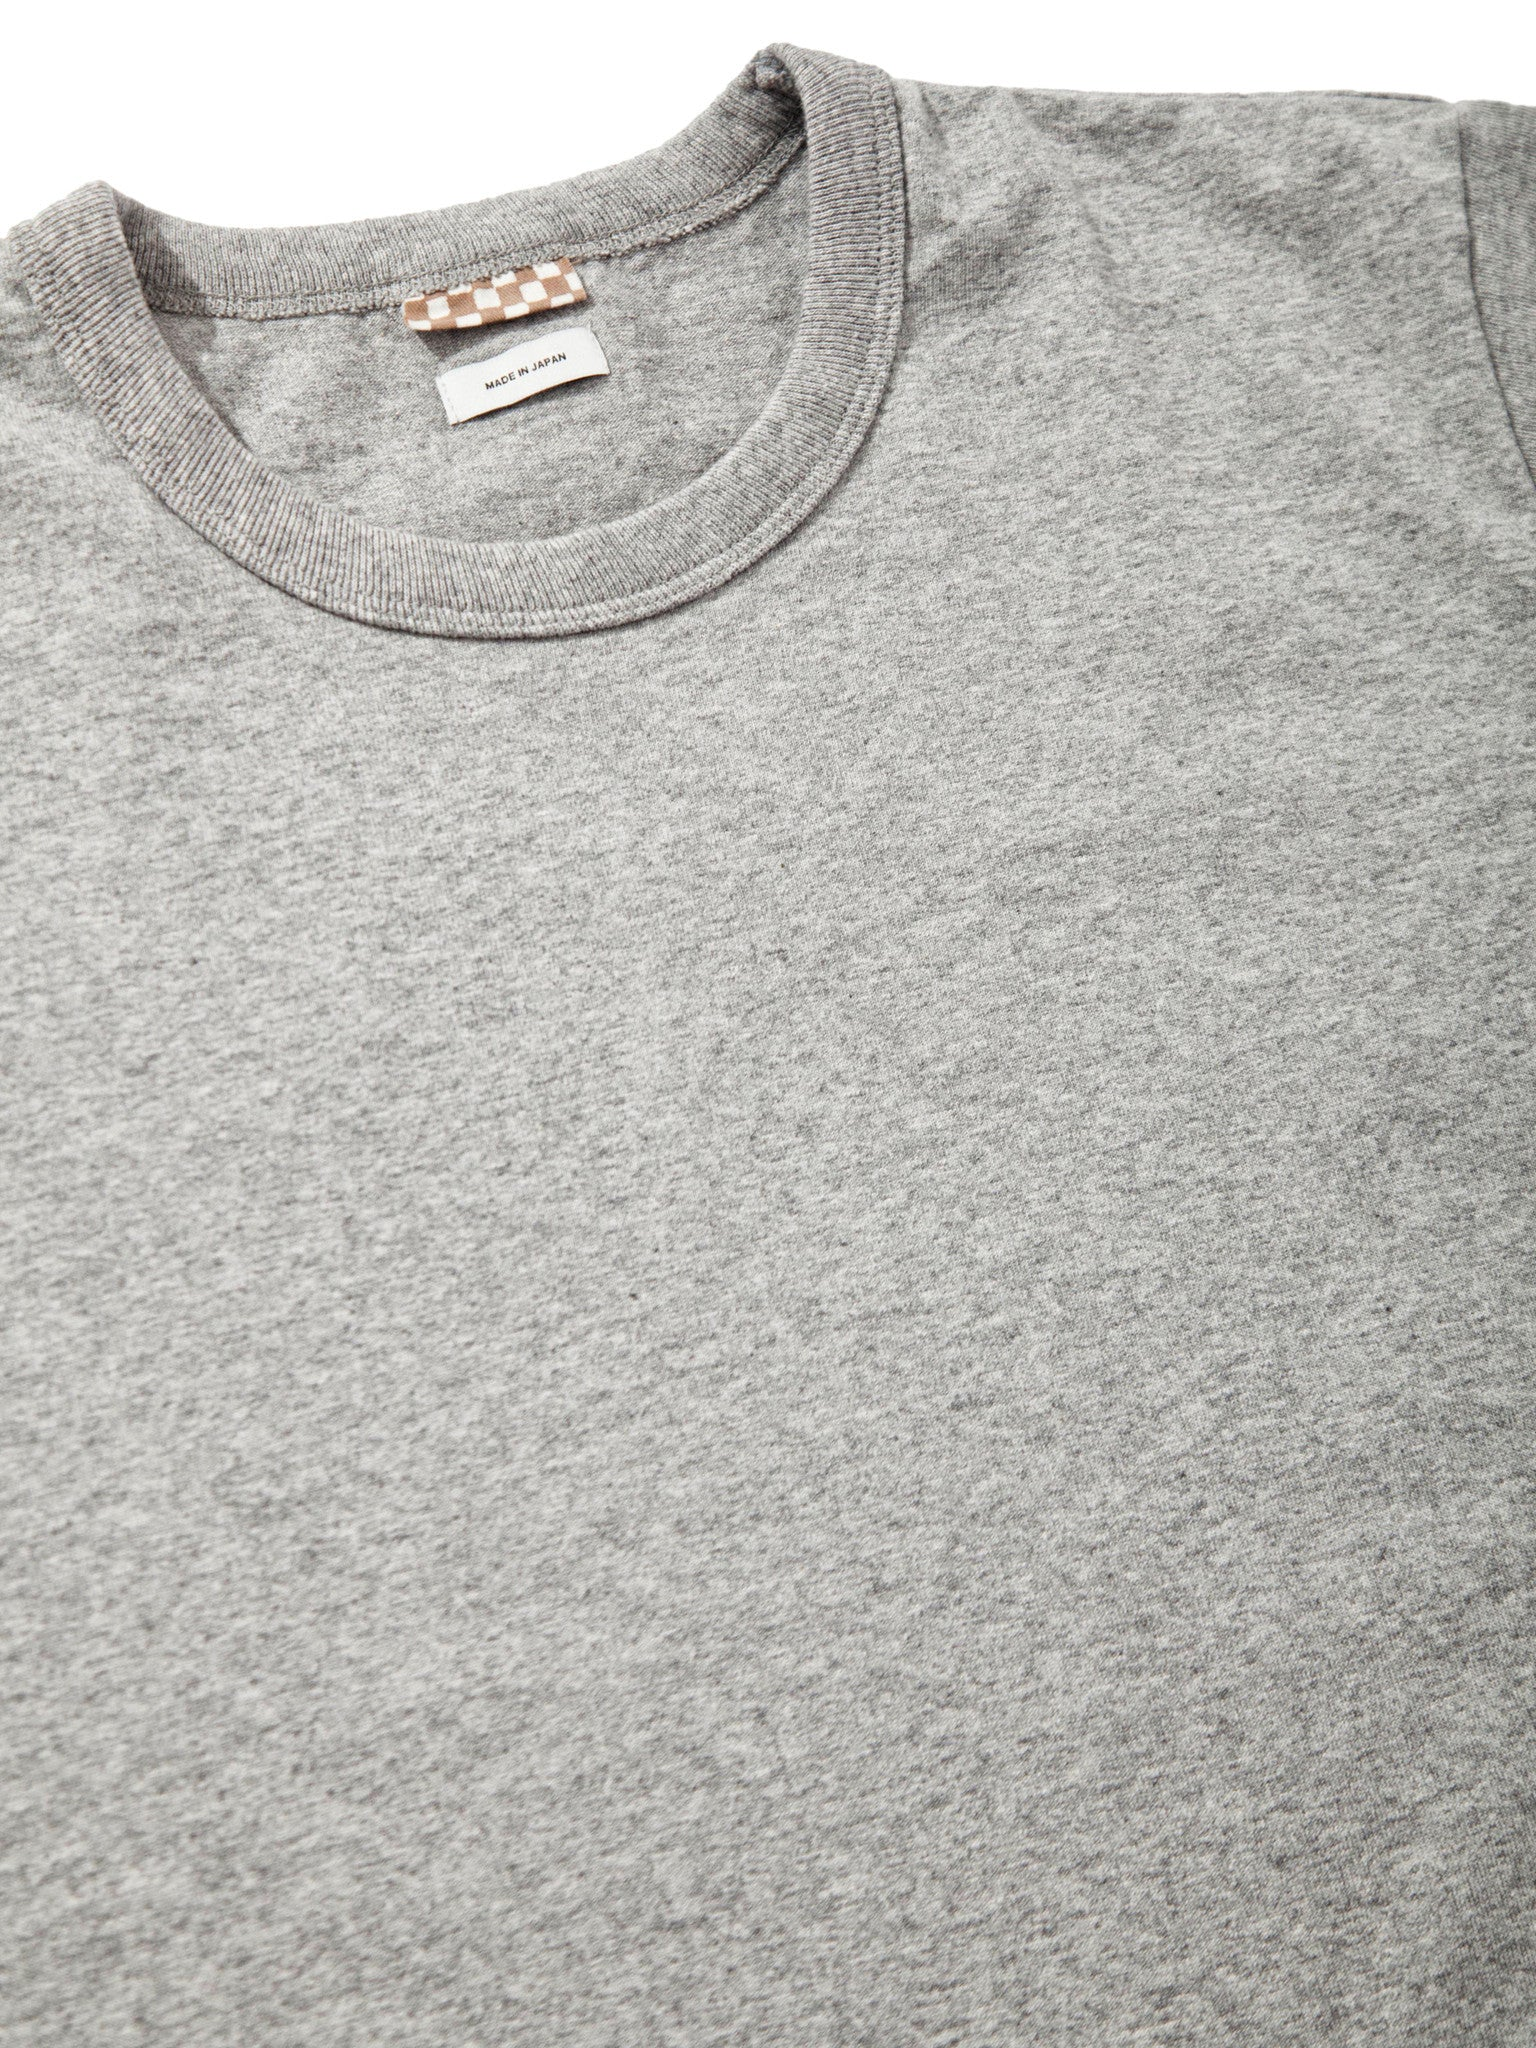 Grey Sublig Crew 3-Pack S/S (WIDE) 6